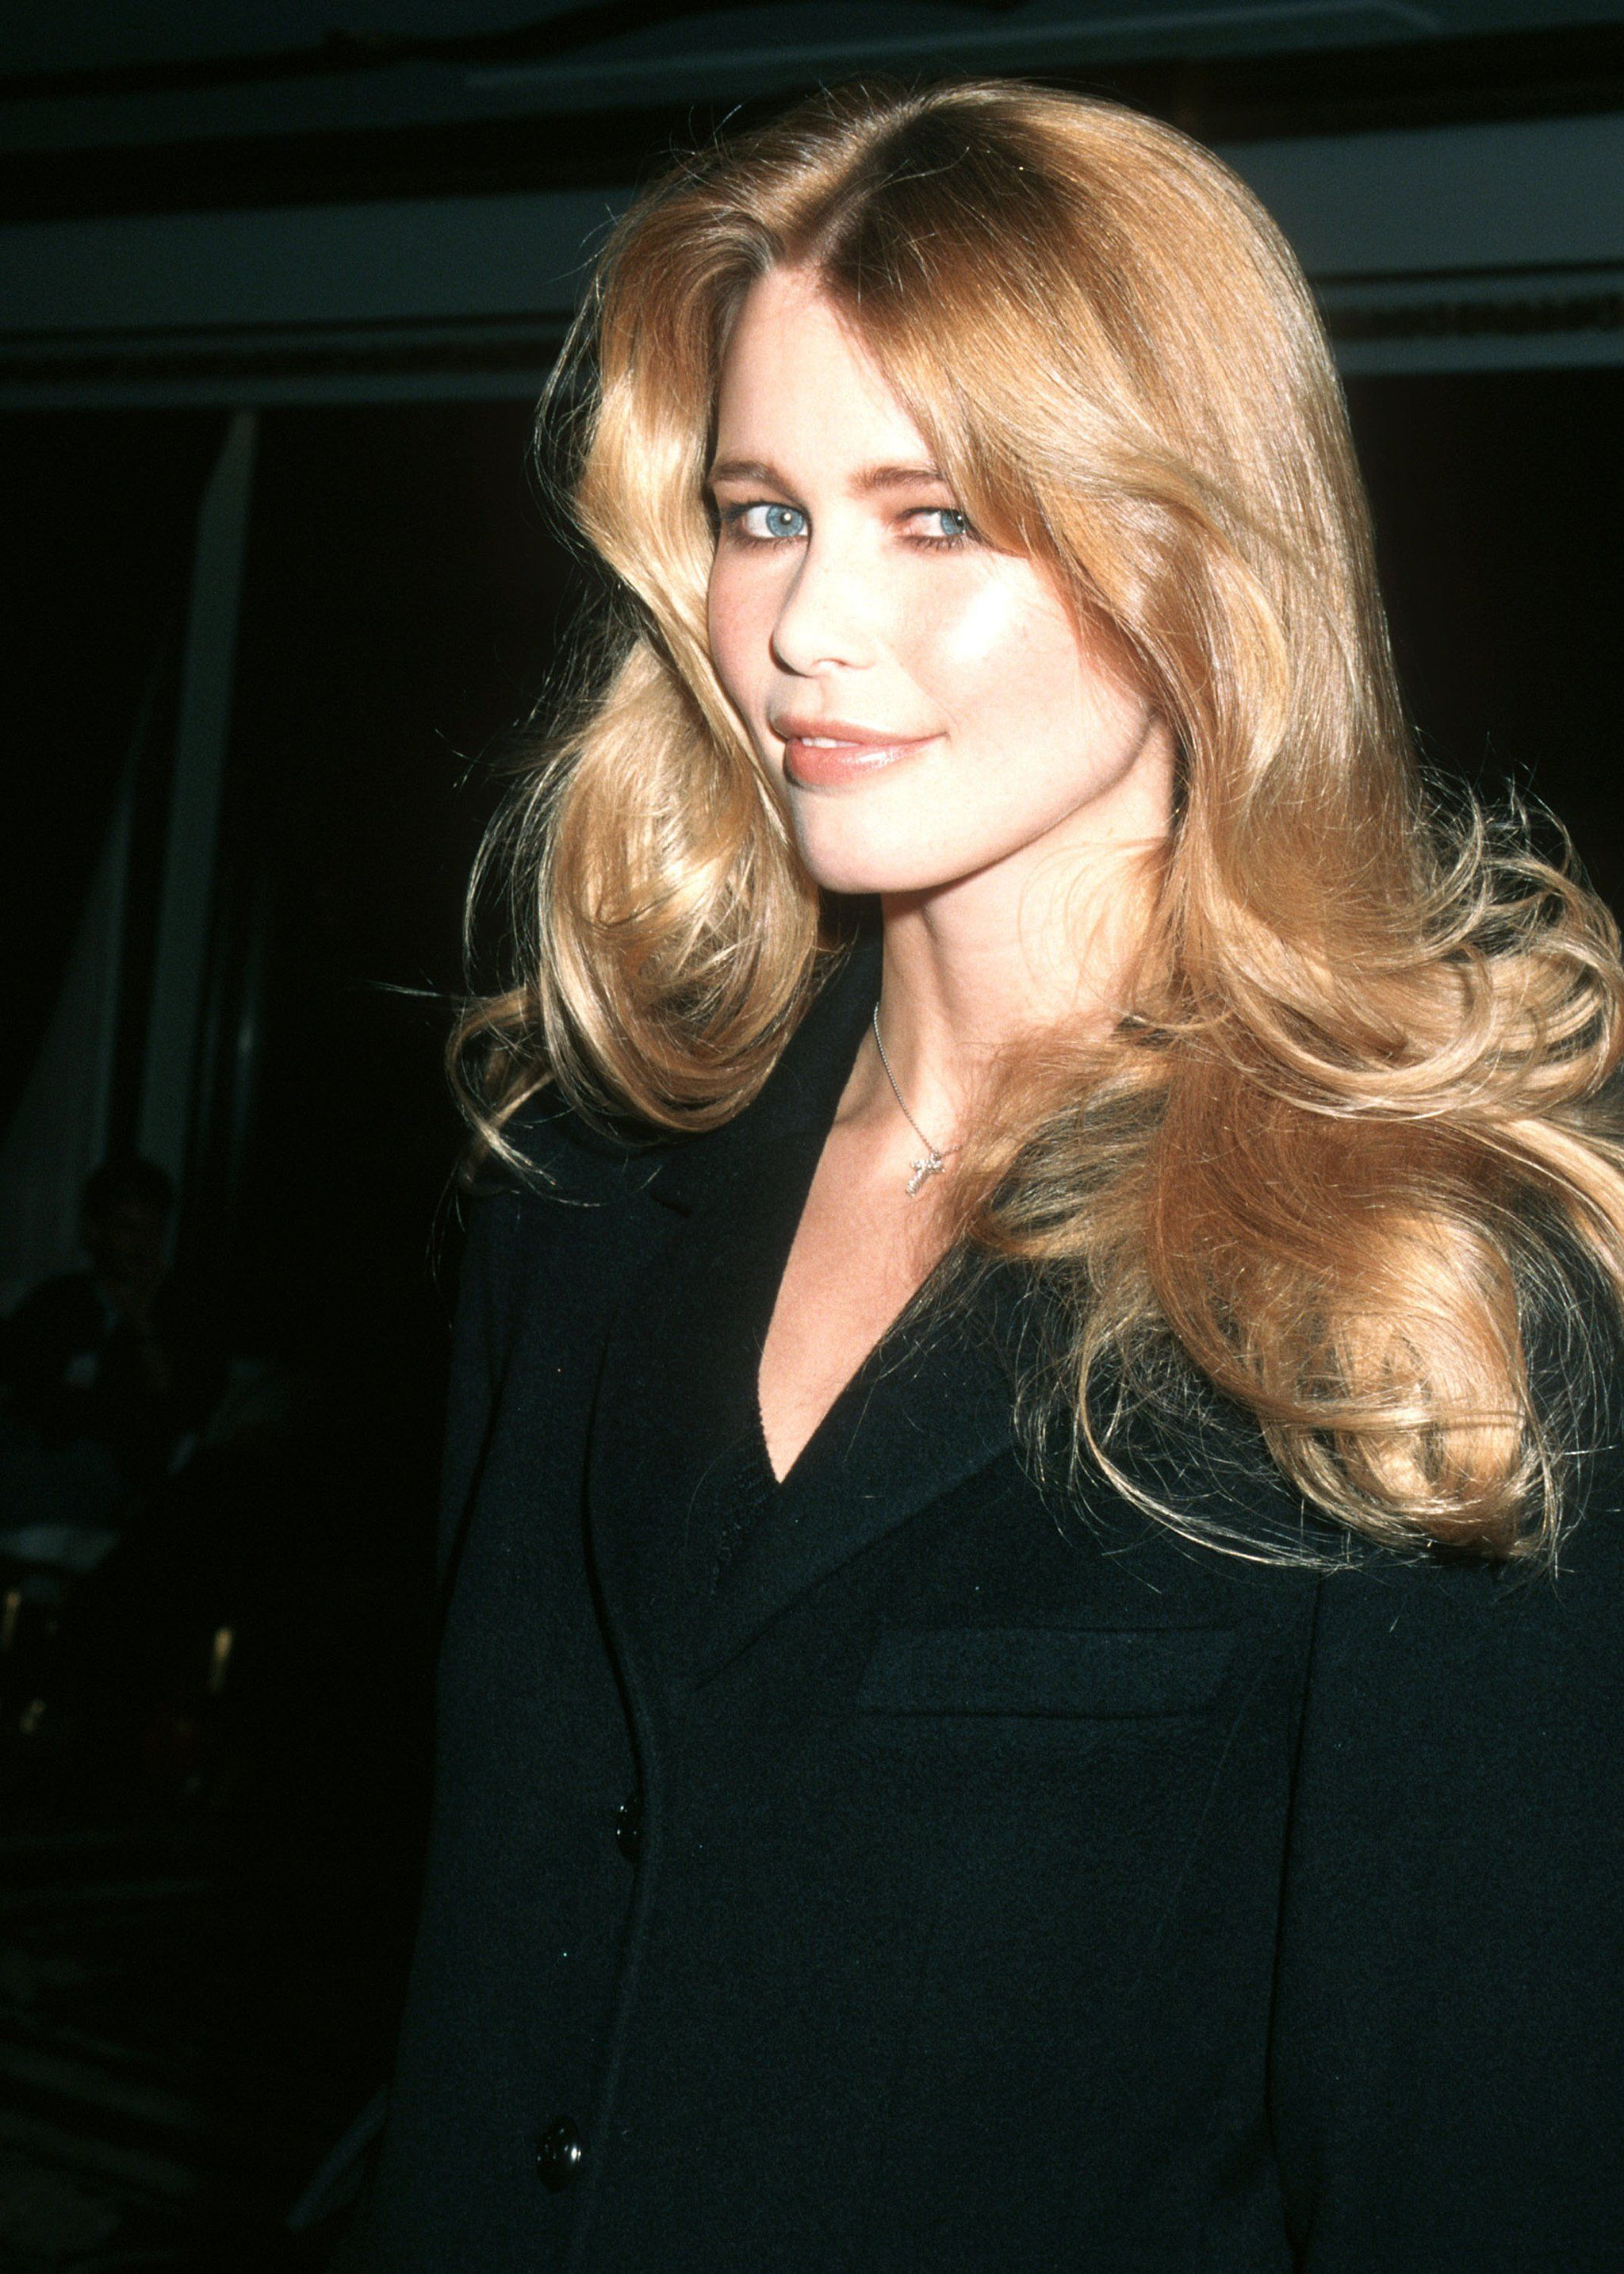 Discussion on this topic: Linda Evans born November 18, 1942 (age 75), sonja-ball/